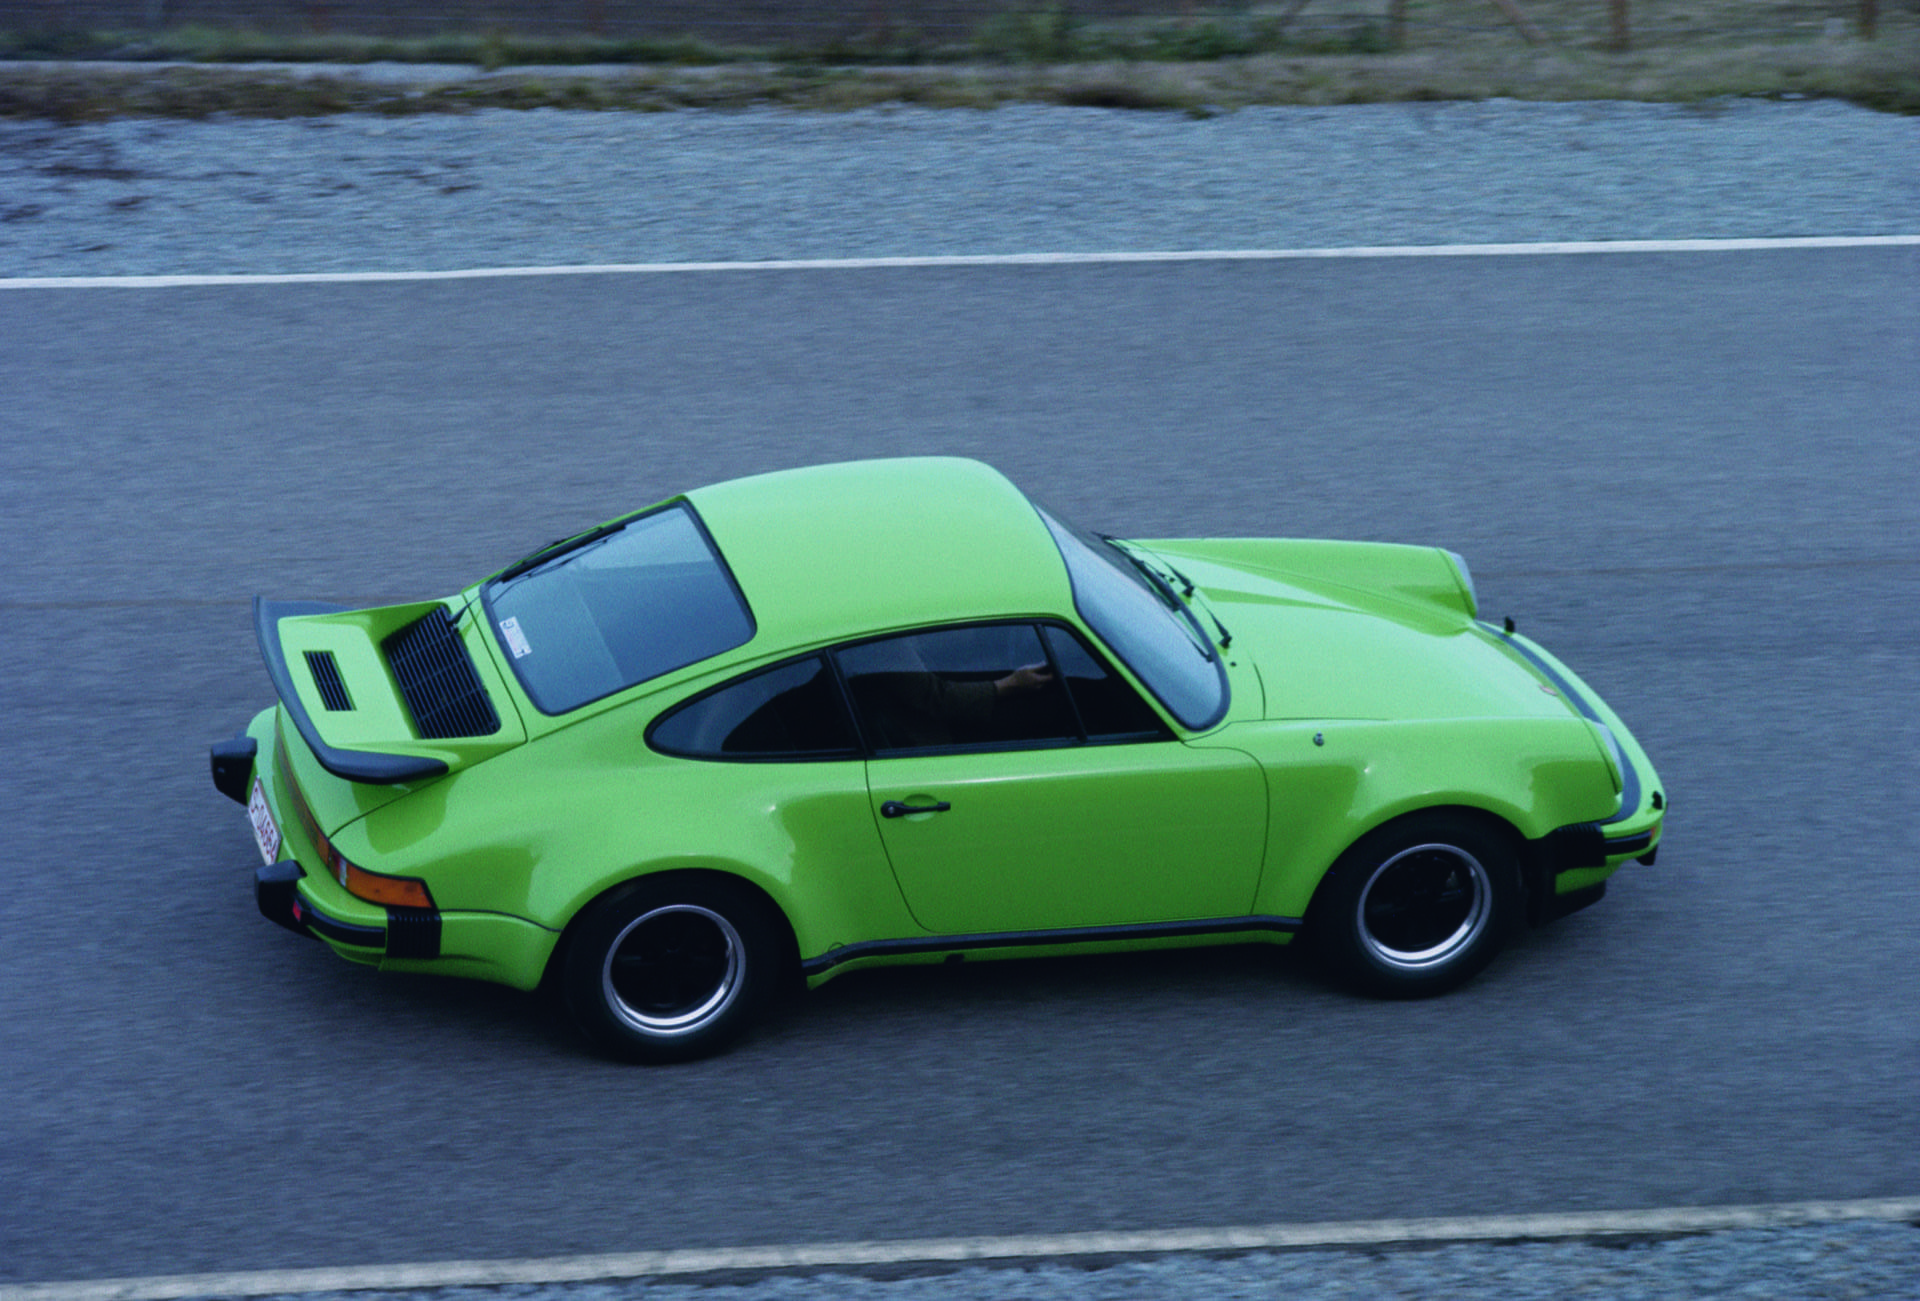 Porsche 911 G Turbo 3 0 Coupe 1975